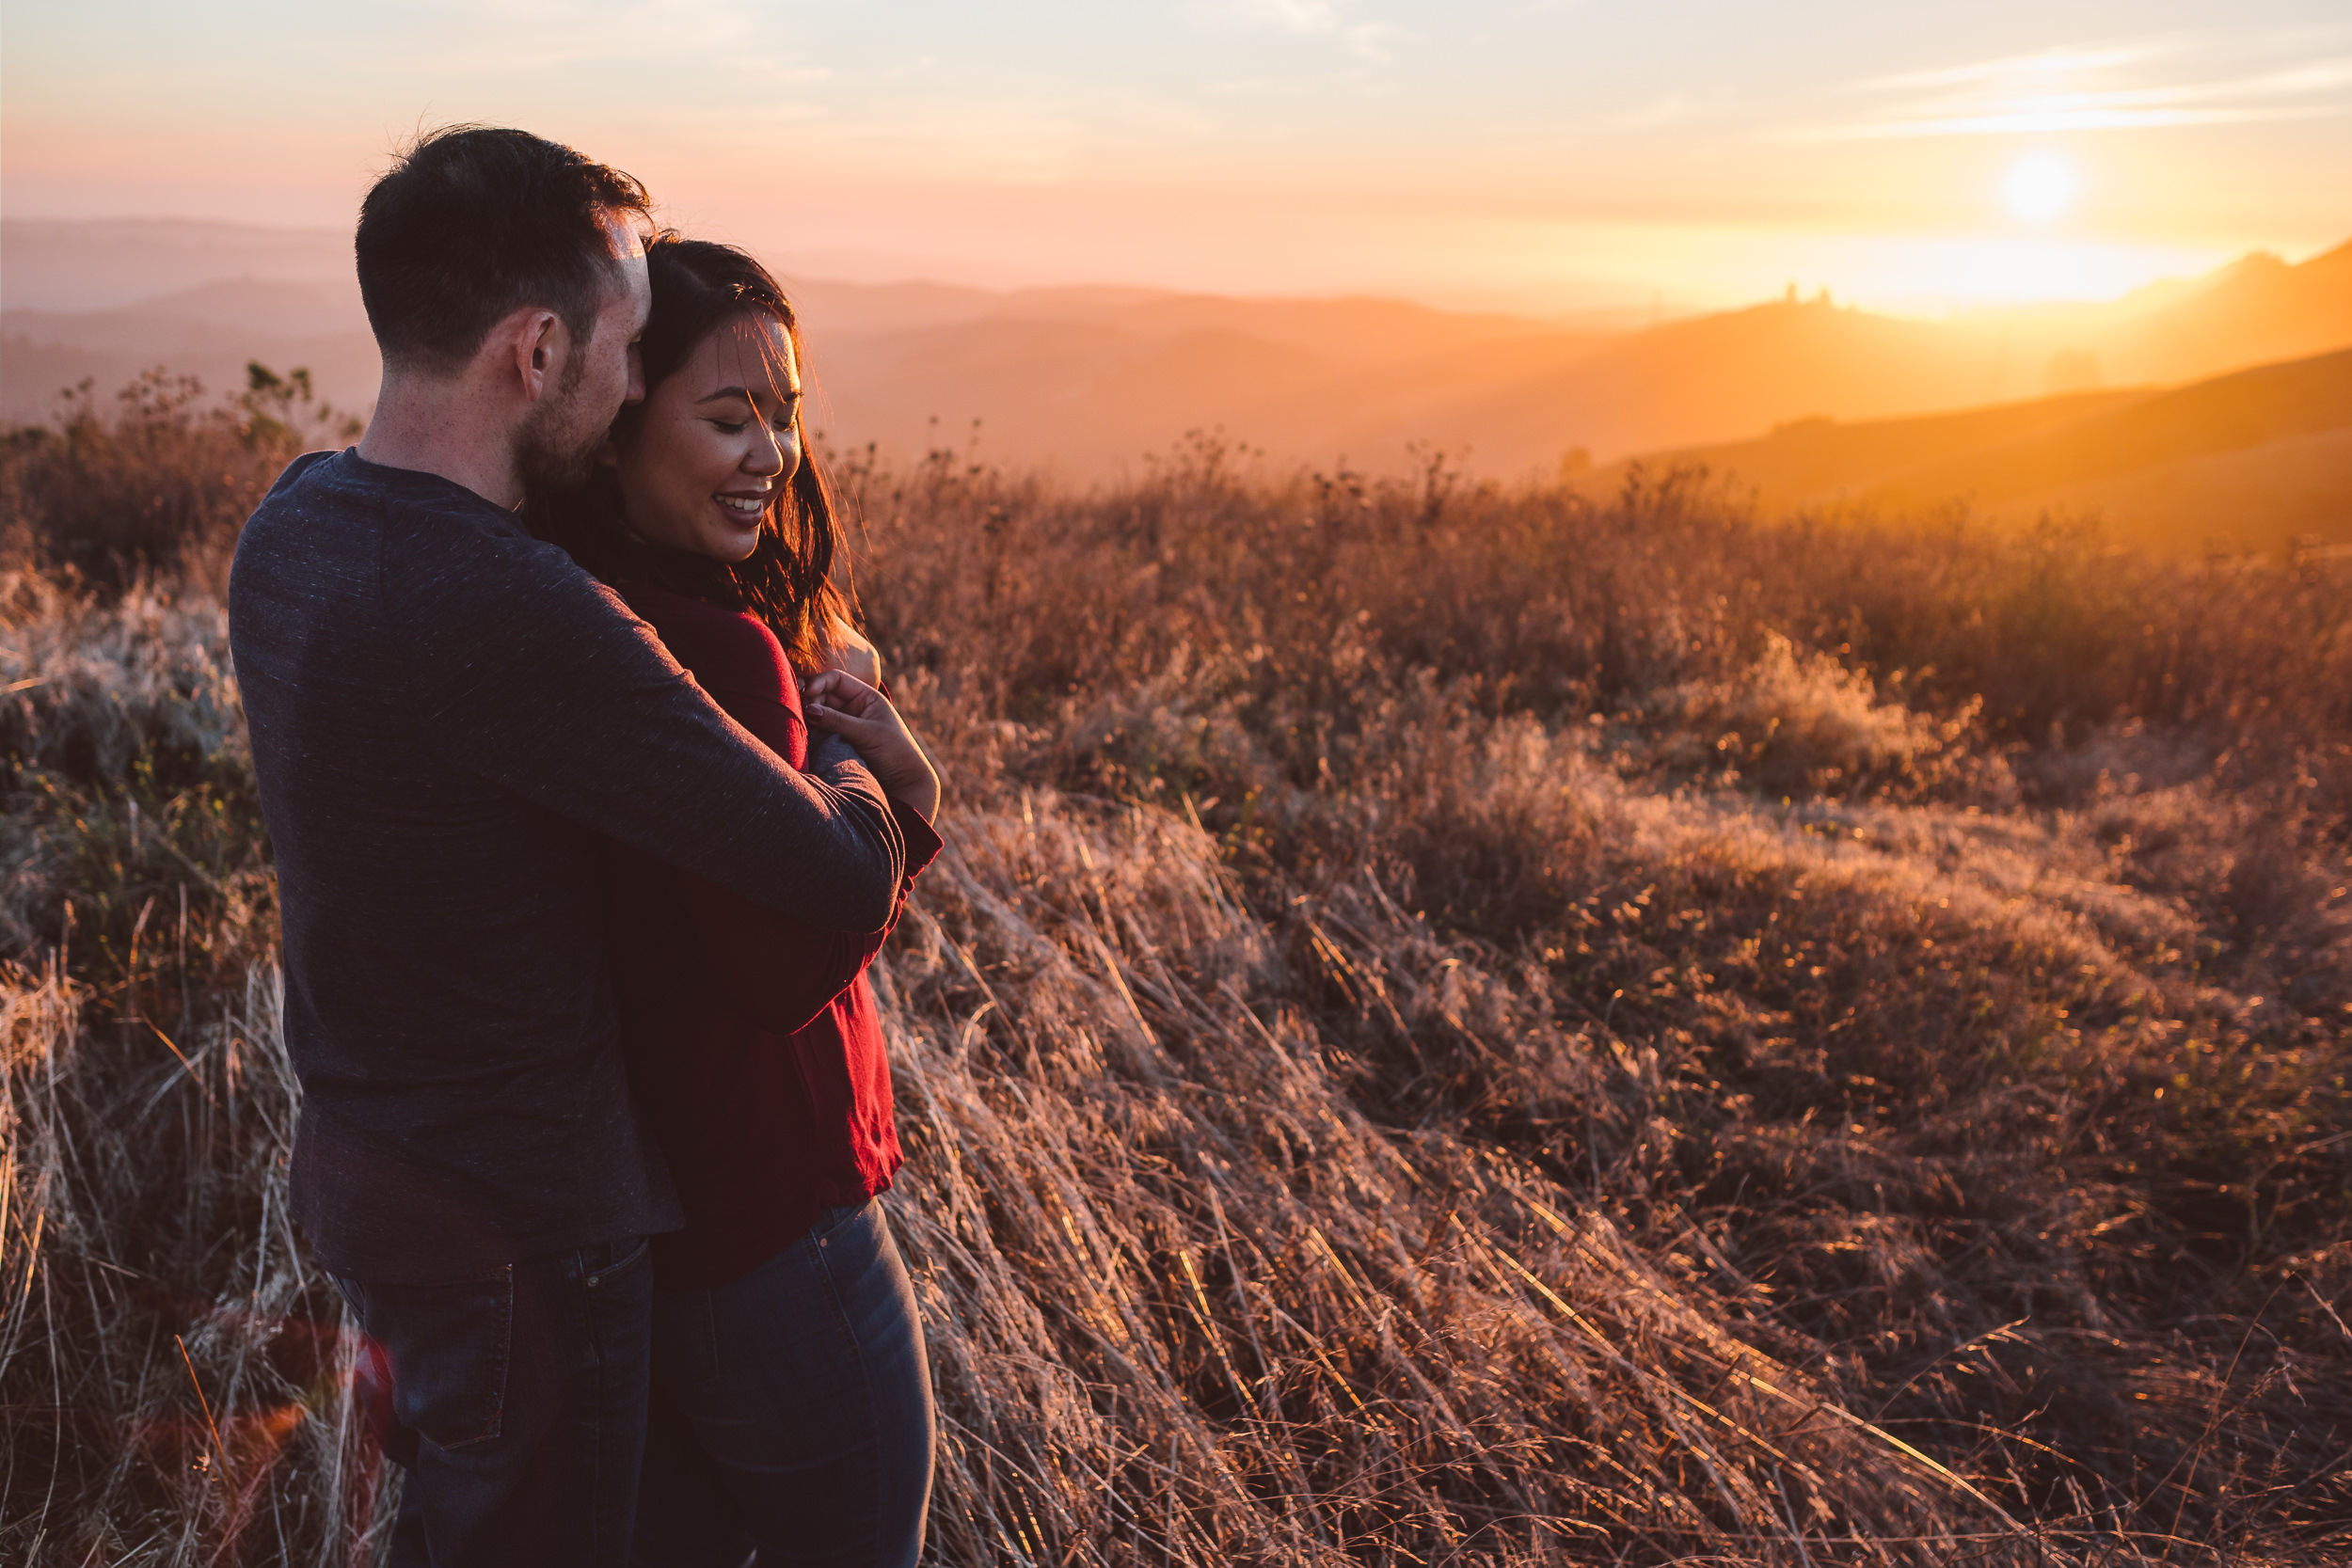 Windy-Hill-Open-Space-Preserve-Palo-Alto-Engagement-Photography-012.jpg